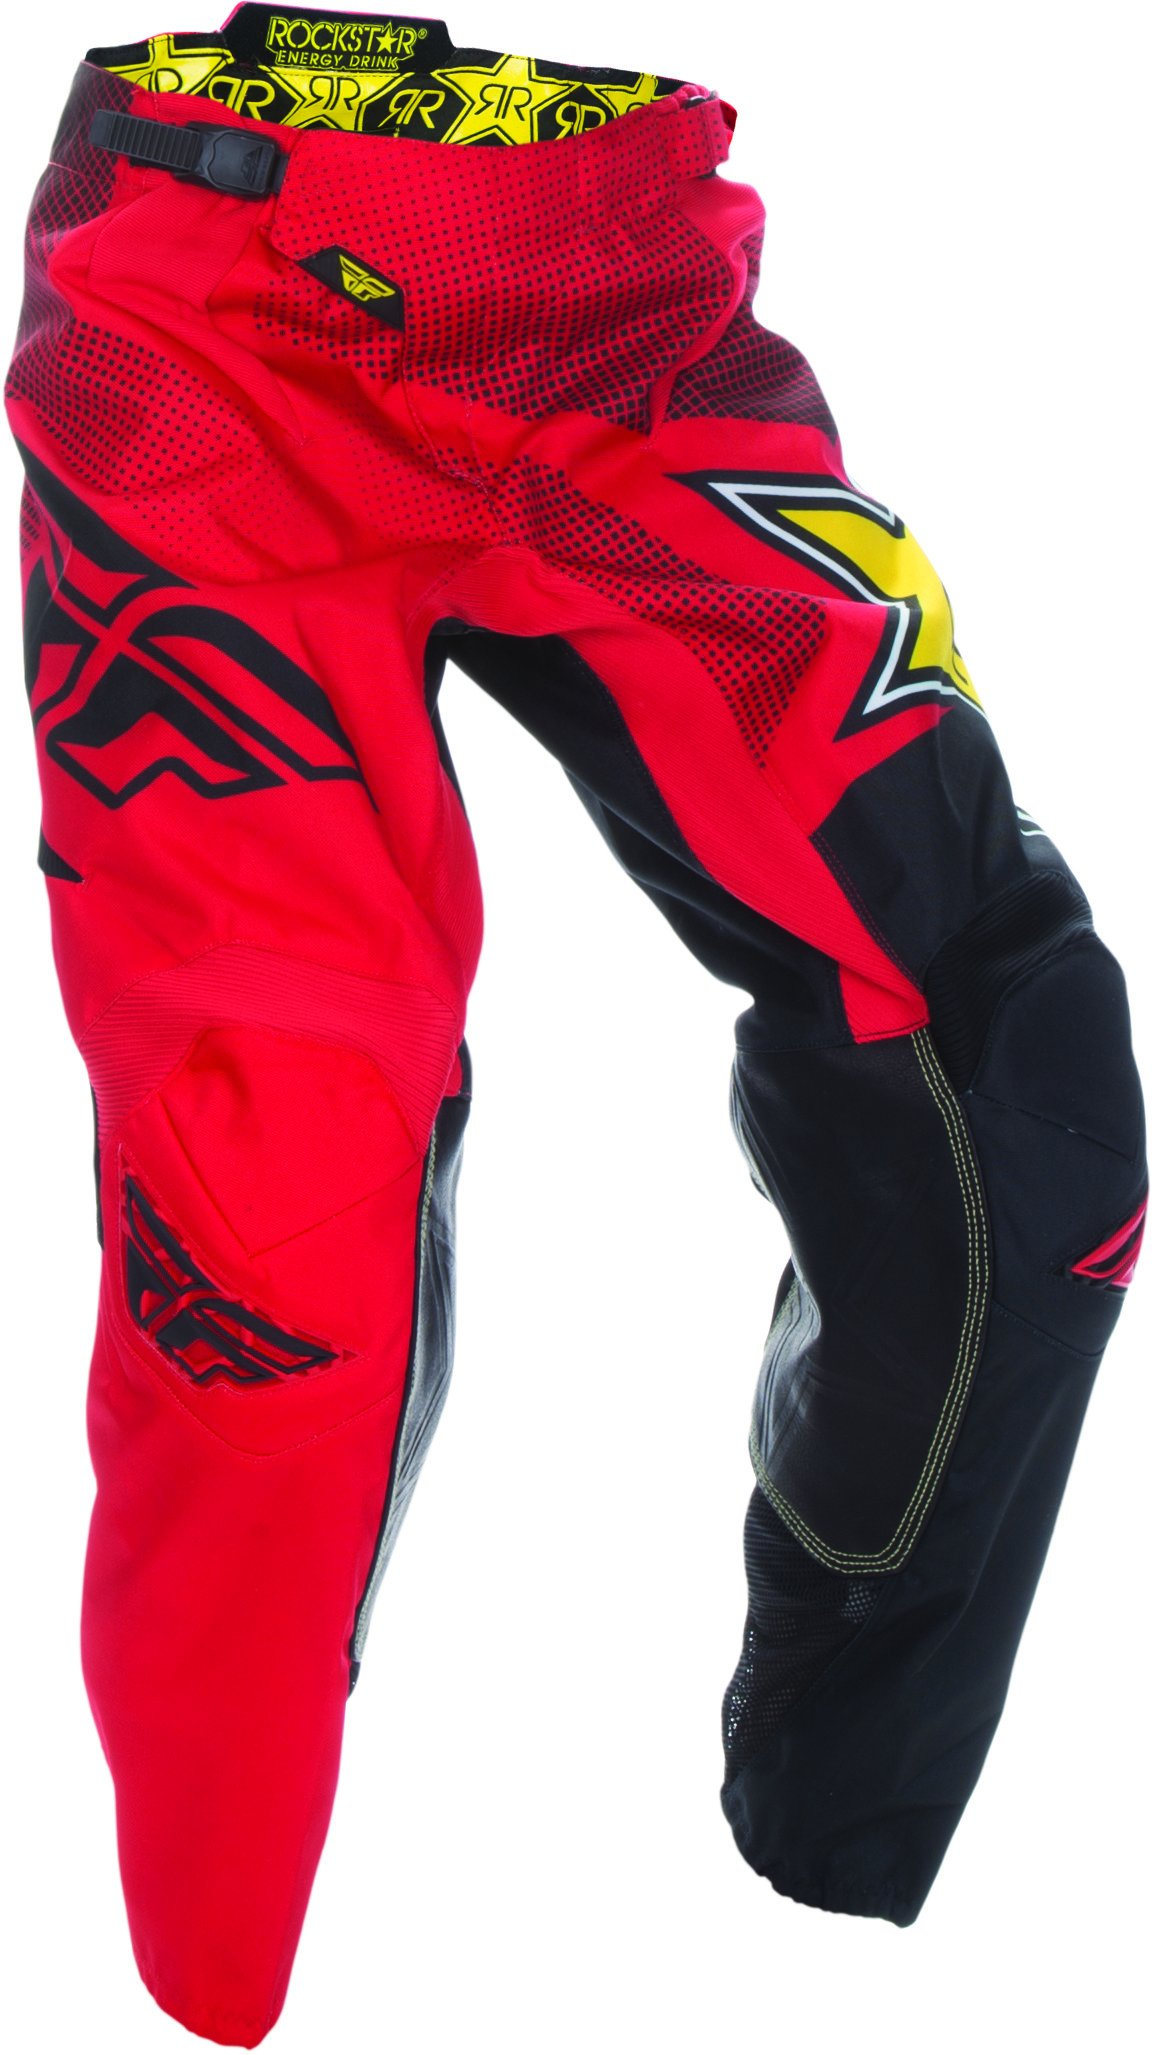 Fly Racing Unisex-Adult Kinetic Rockstar Pants Red/Black Size 38